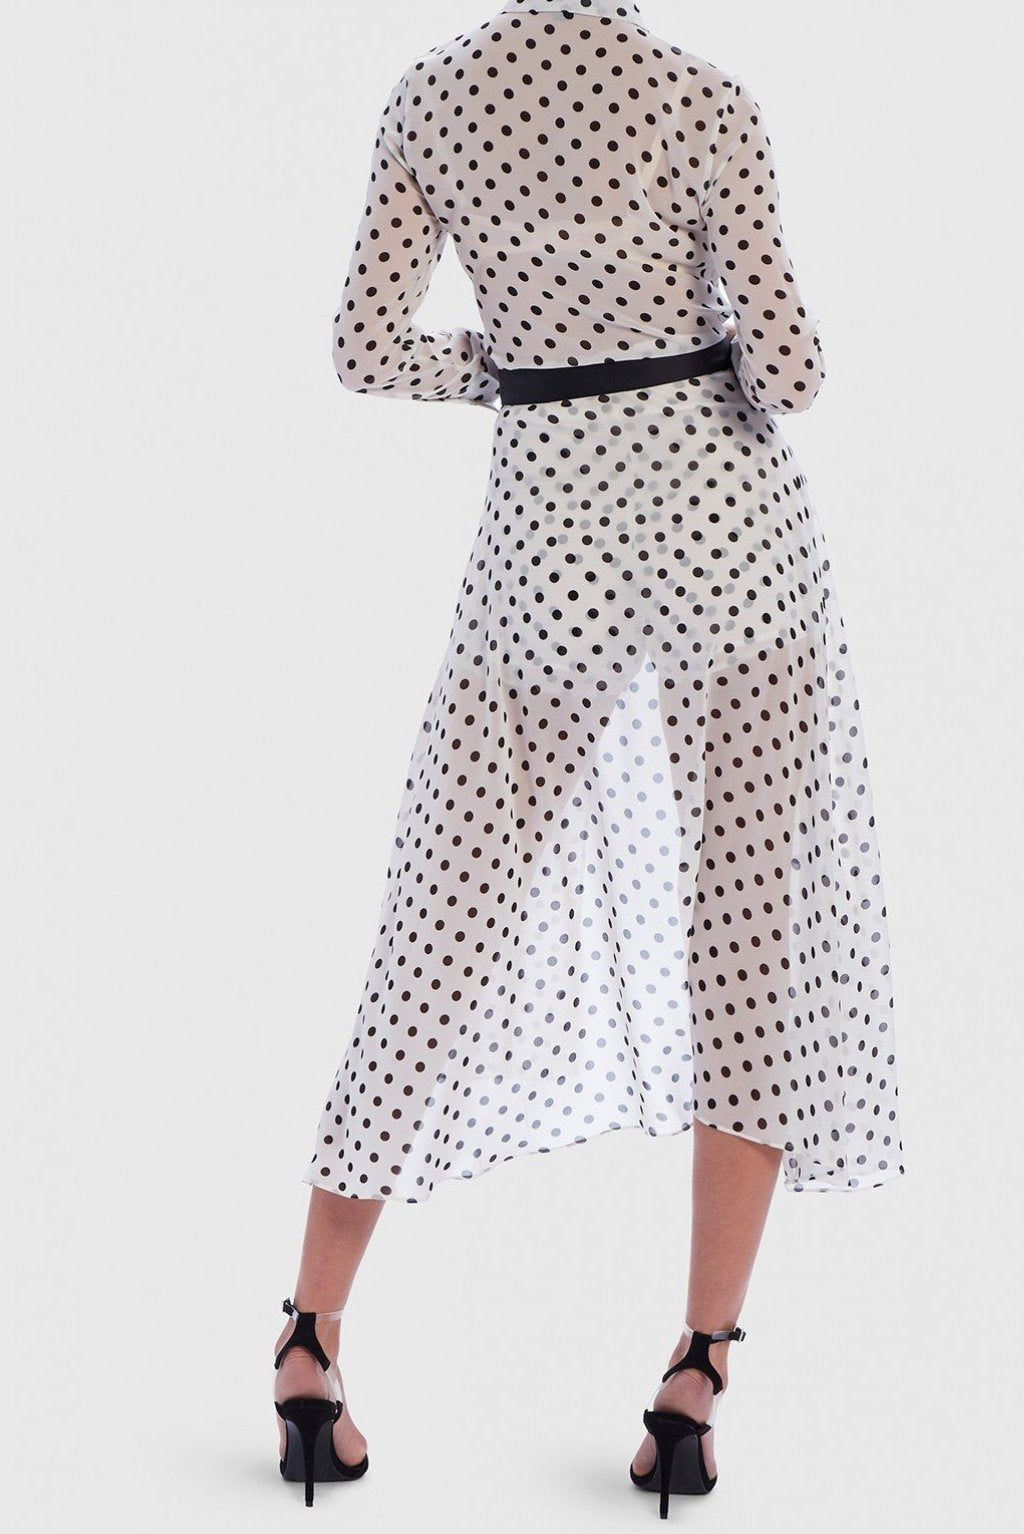 FOREVER UNIQUE U POLKA DOT PLAYSUIT - WHITE